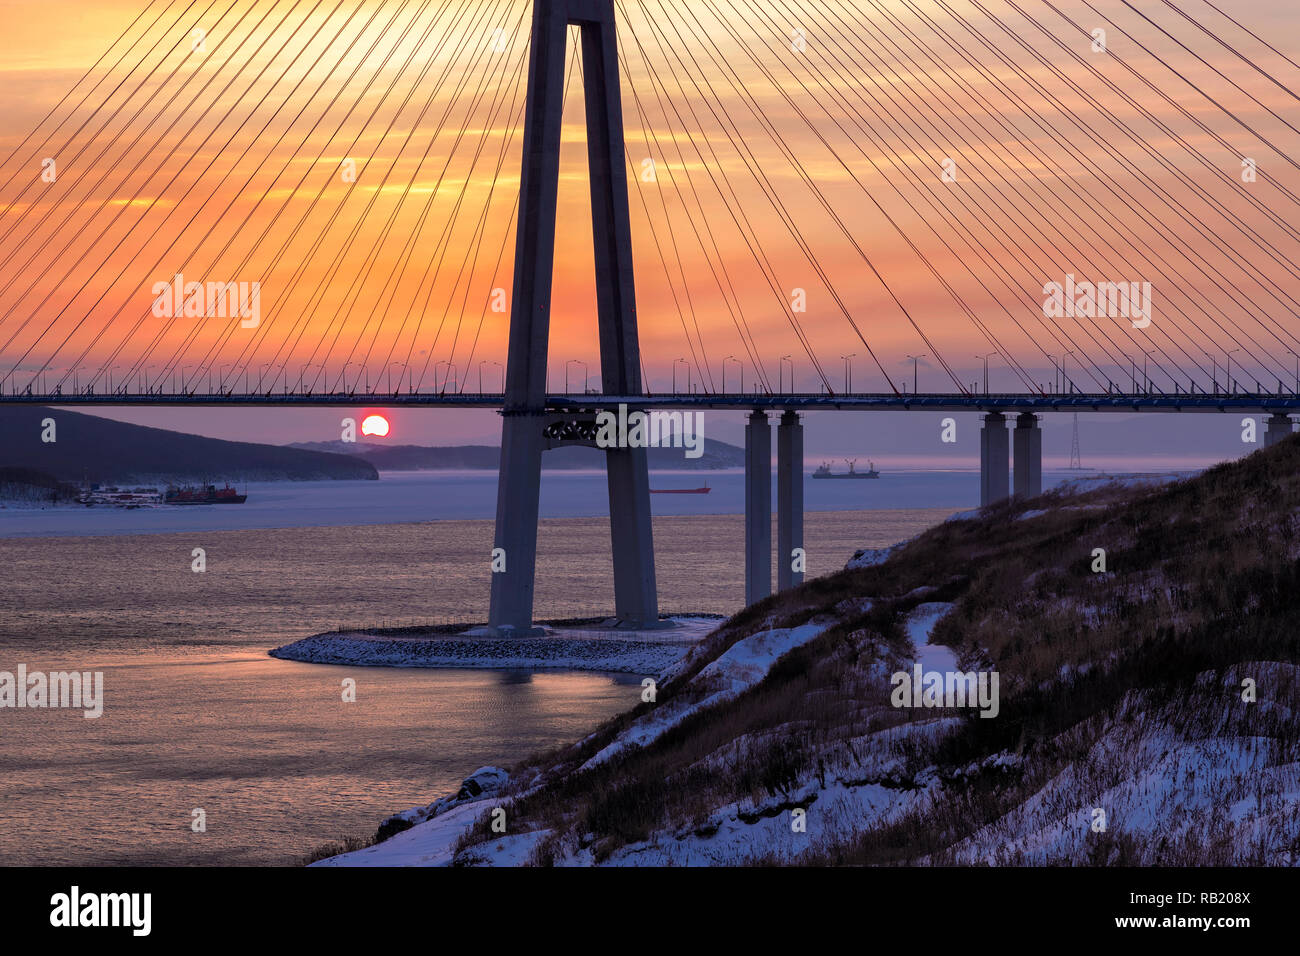 Winter sunset view of long cable-stayed bridge in Vladivostok, Russia - Stock Image